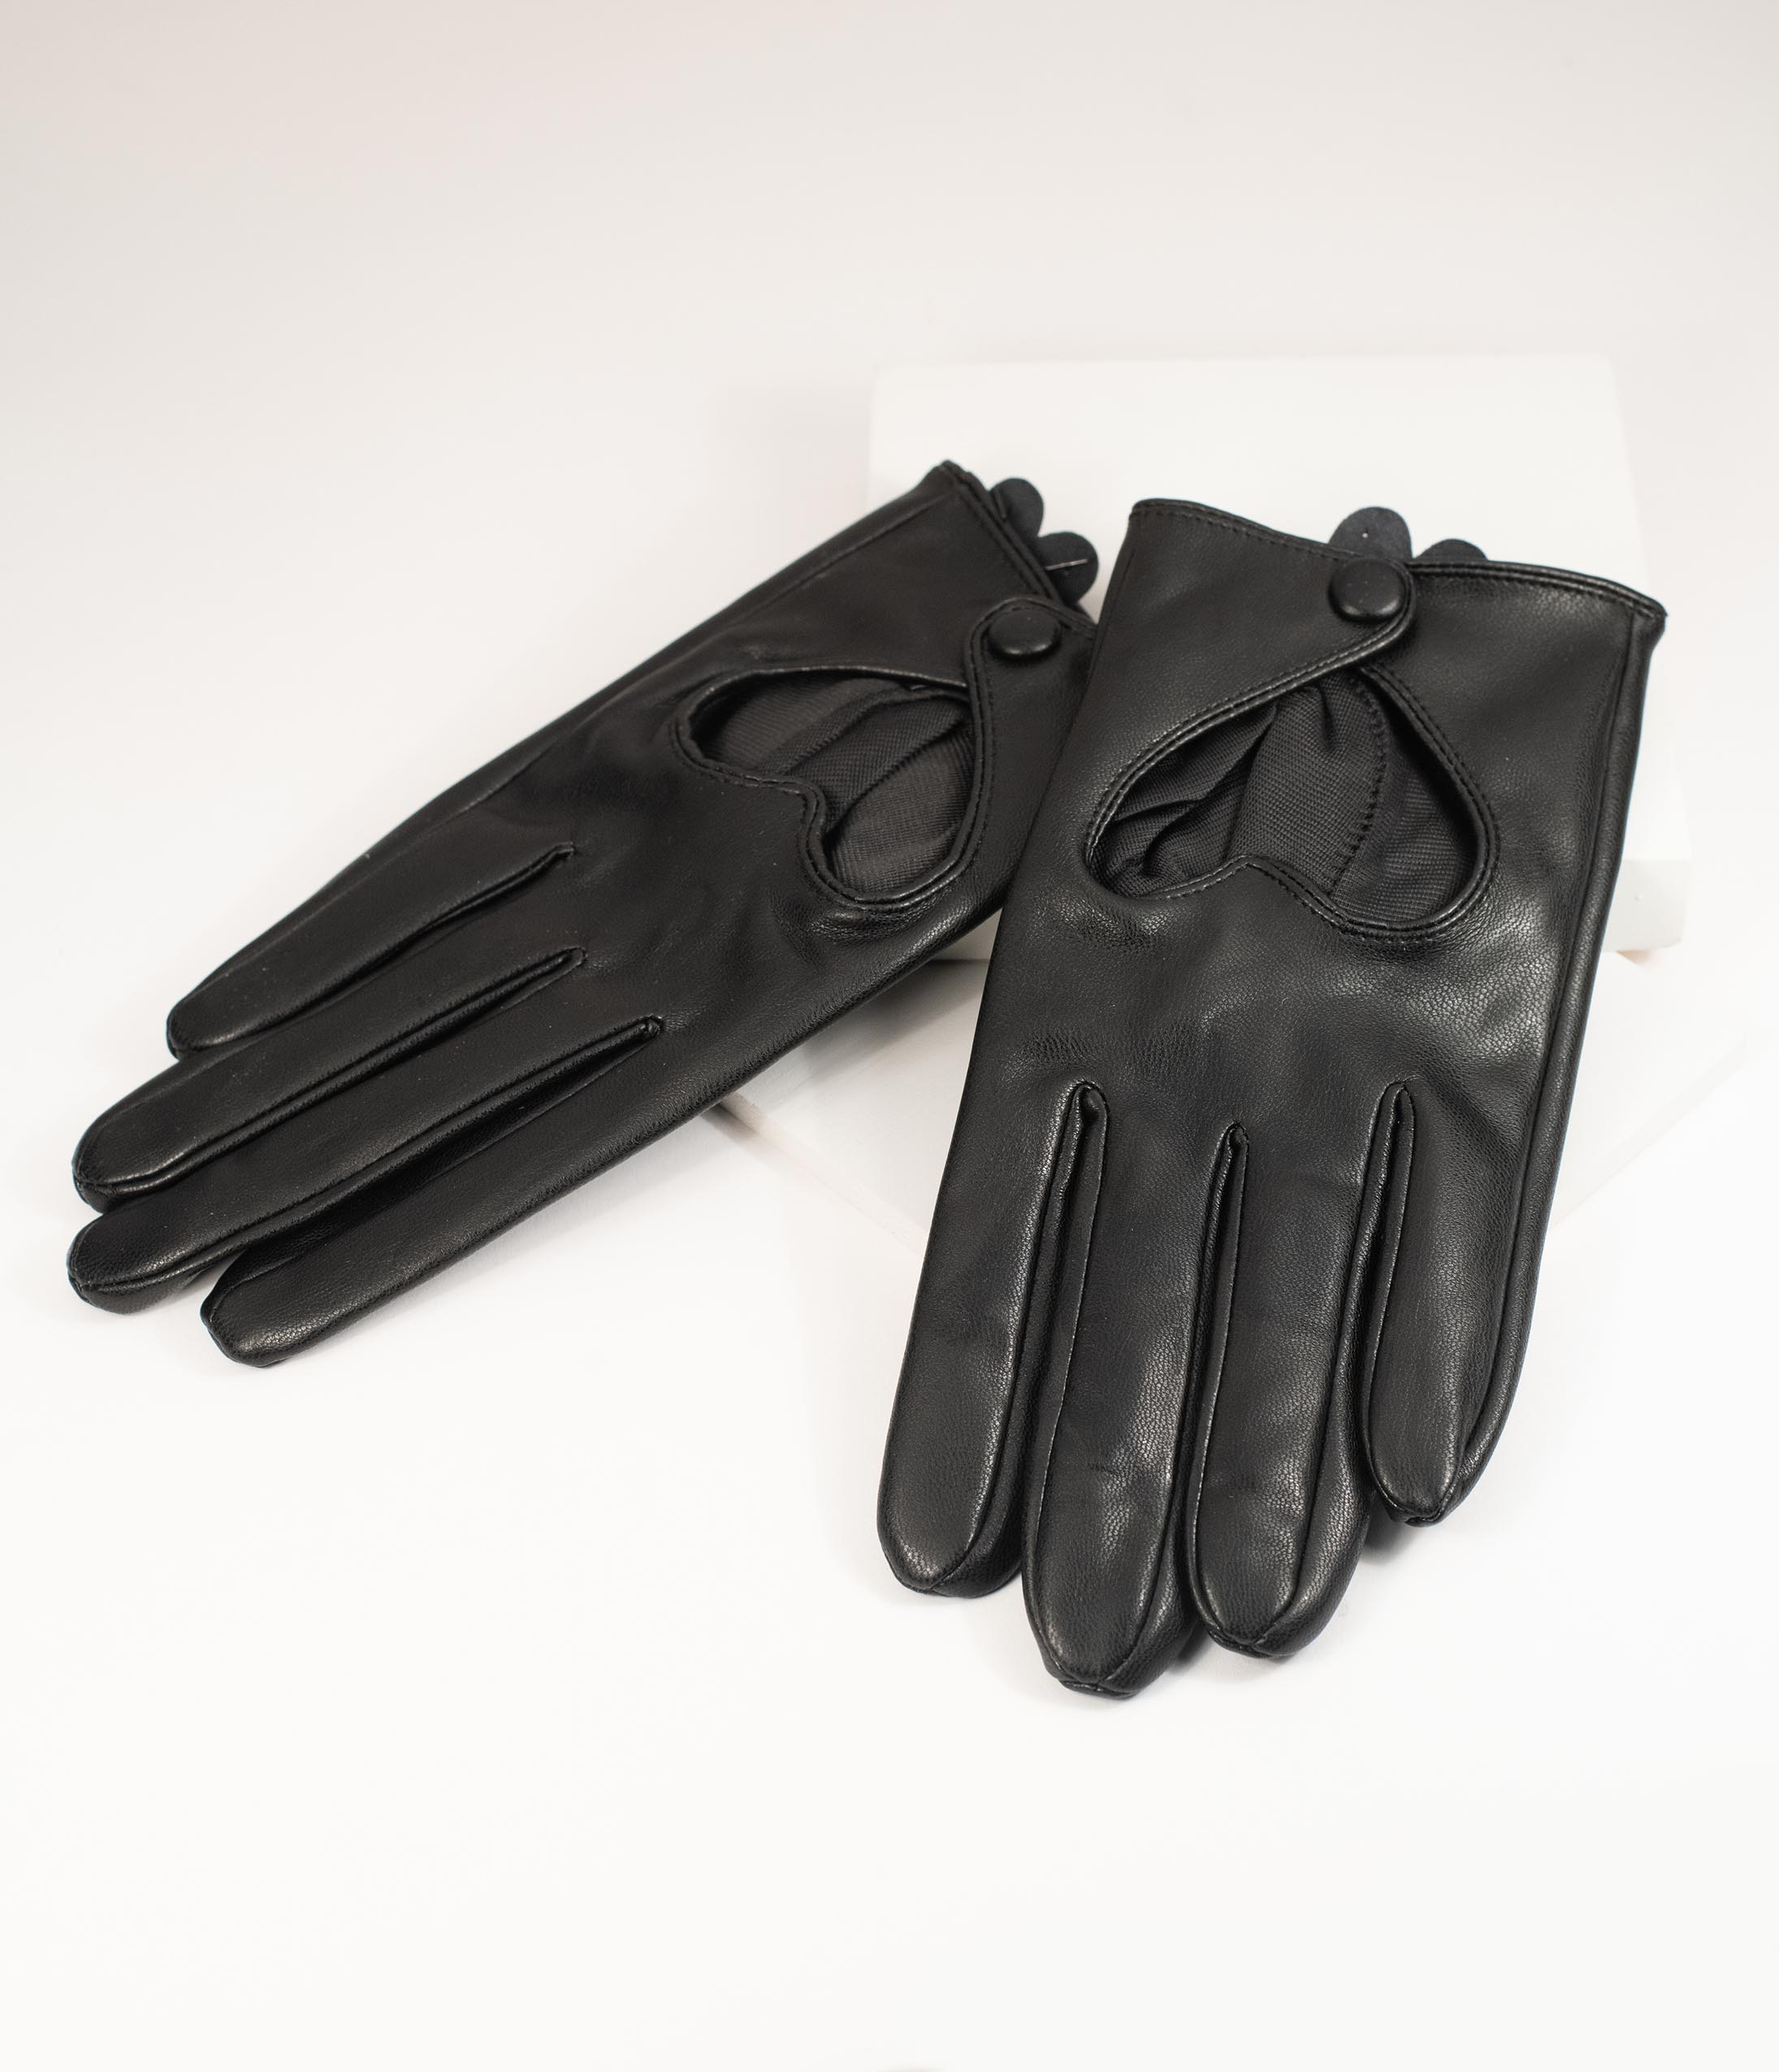 Vintage Style Gloves- Long, Wrist, Evening, Day, Leather, Lace Black Leatherette Heart Cutout Gloves $26.00 AT vintagedancer.com